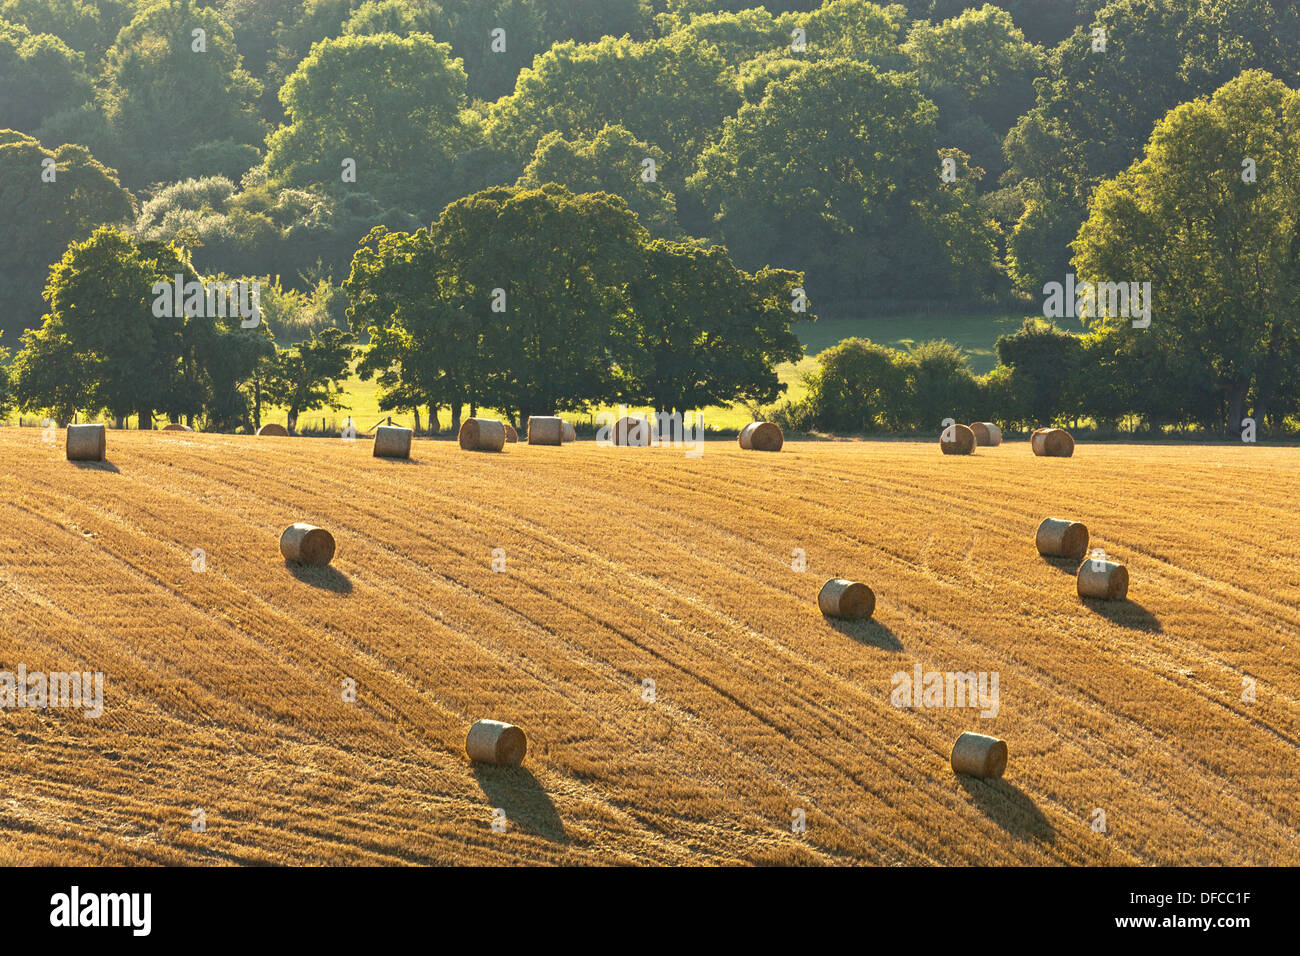 Image result for images of late summer evening in hampshire